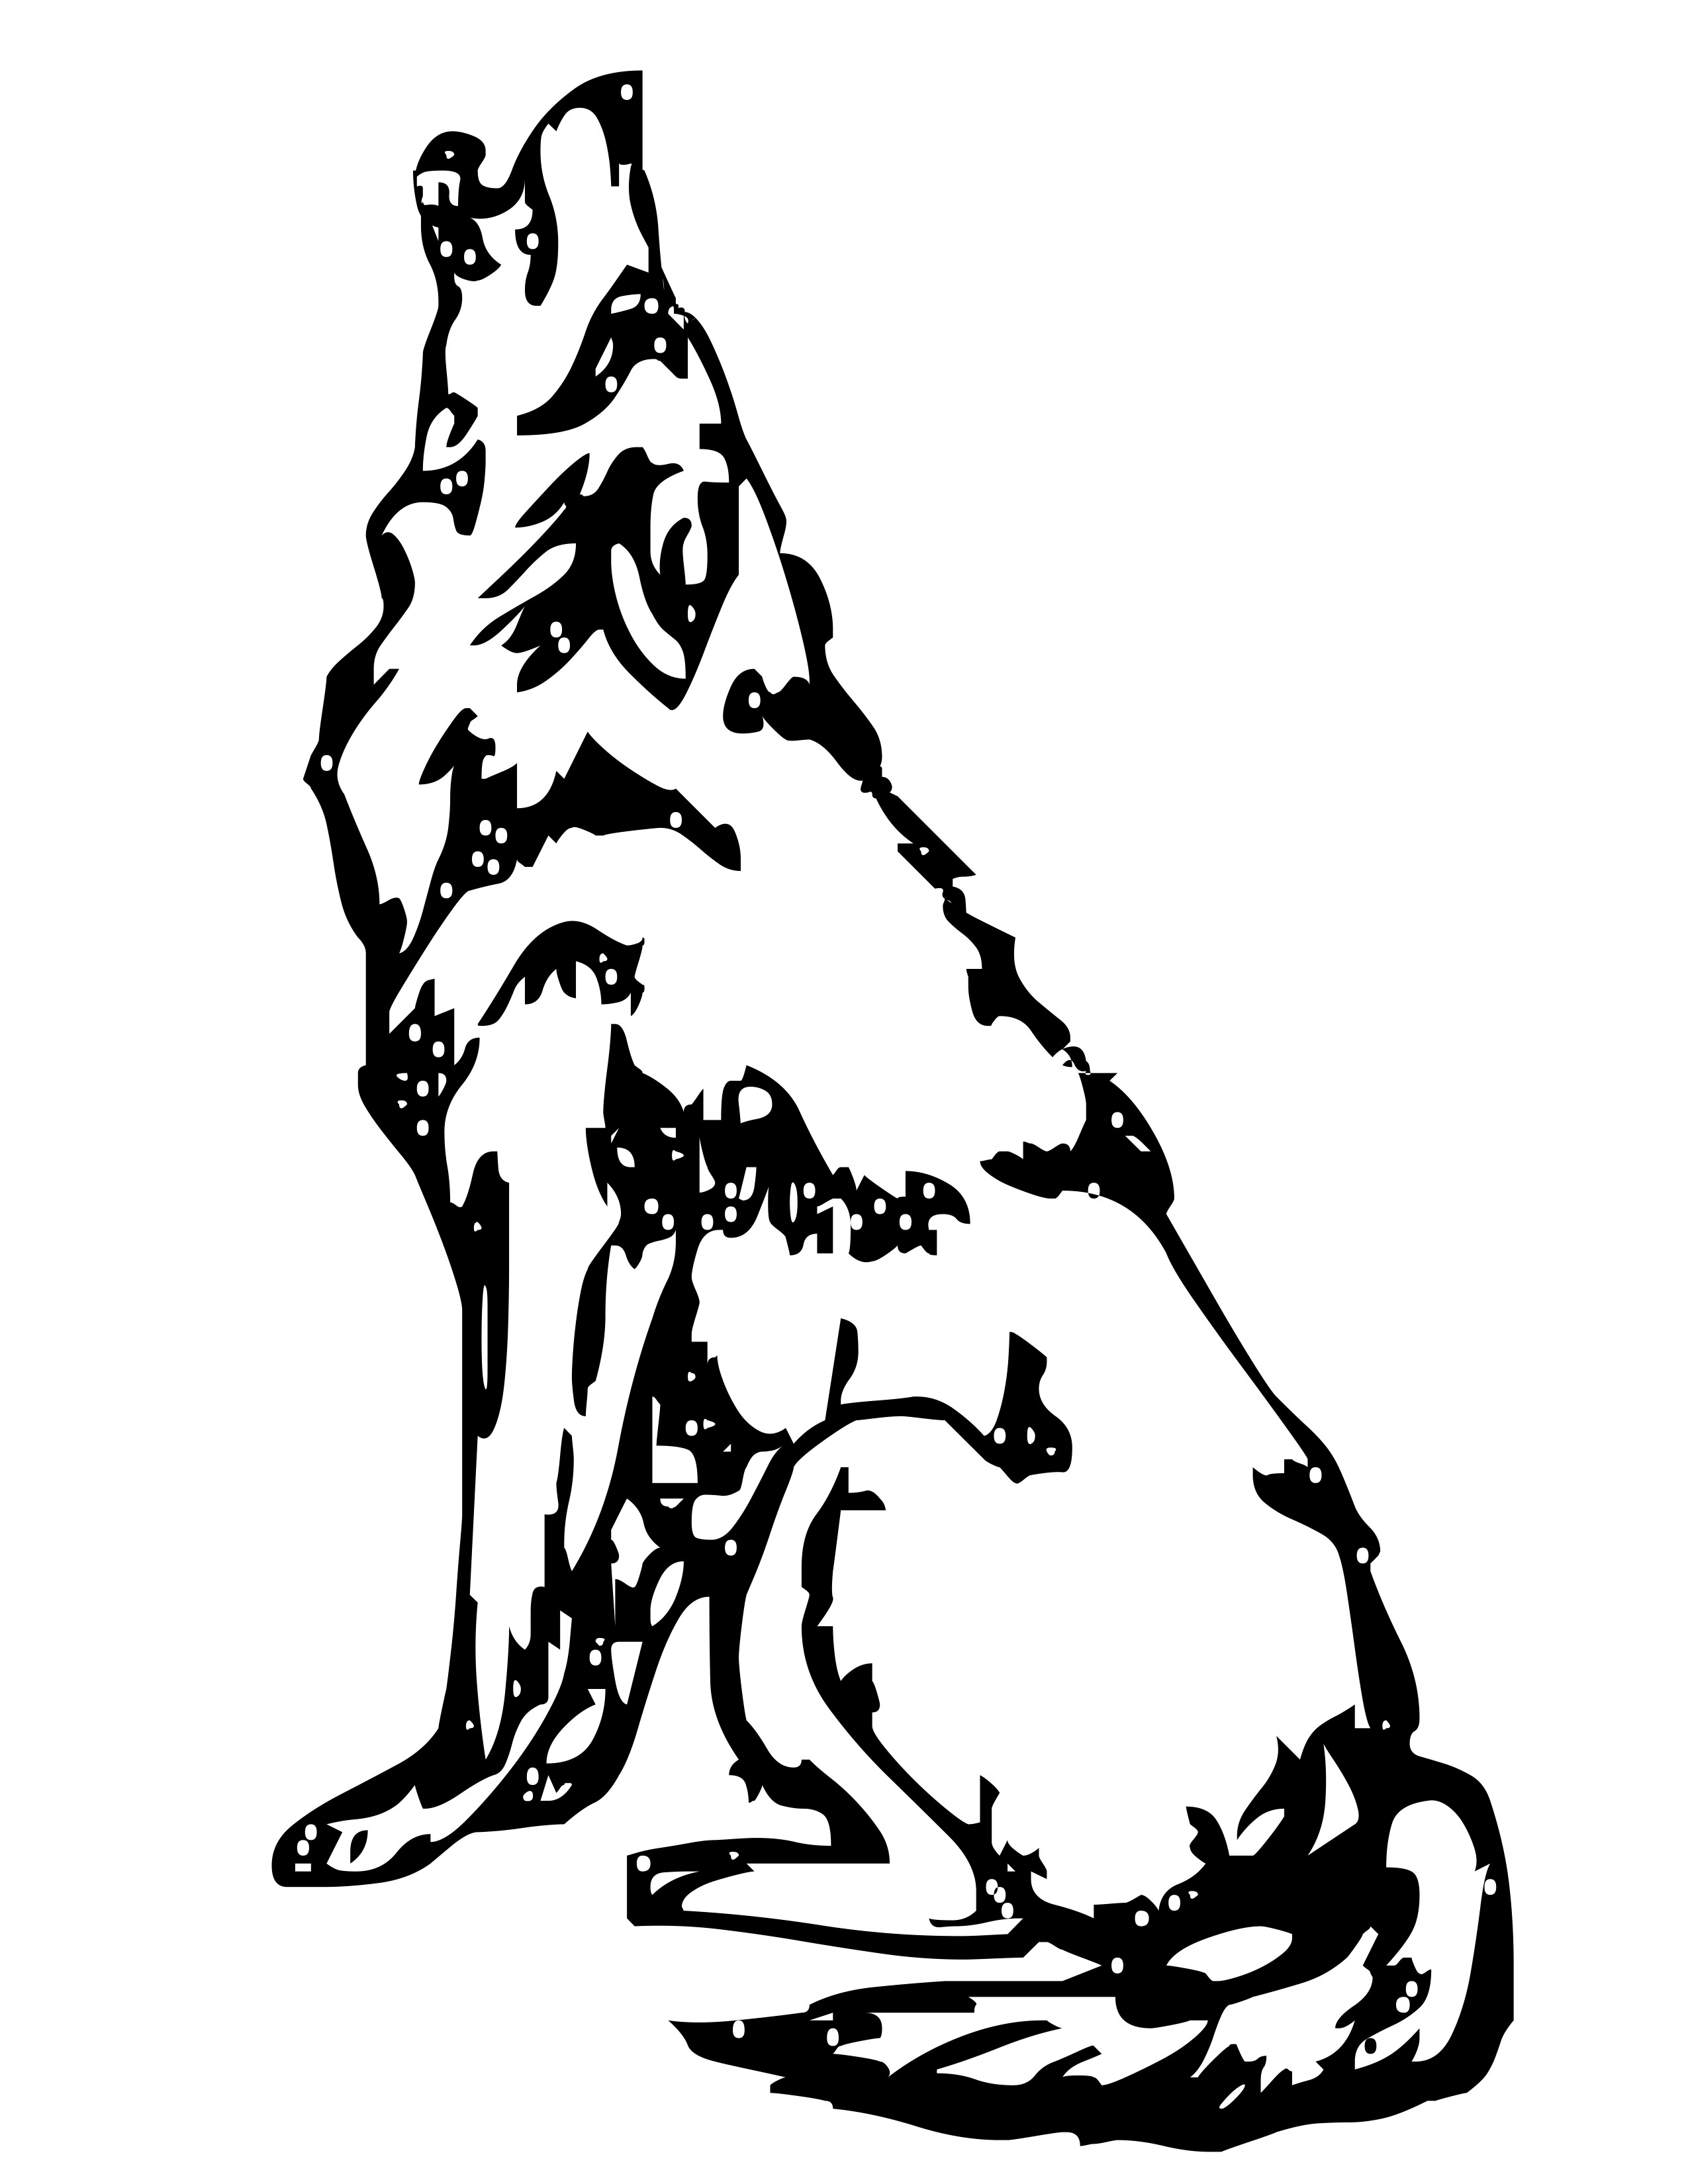 coloring pages wolves nice female wolf coloring pages farkas minták pages coloring wolves